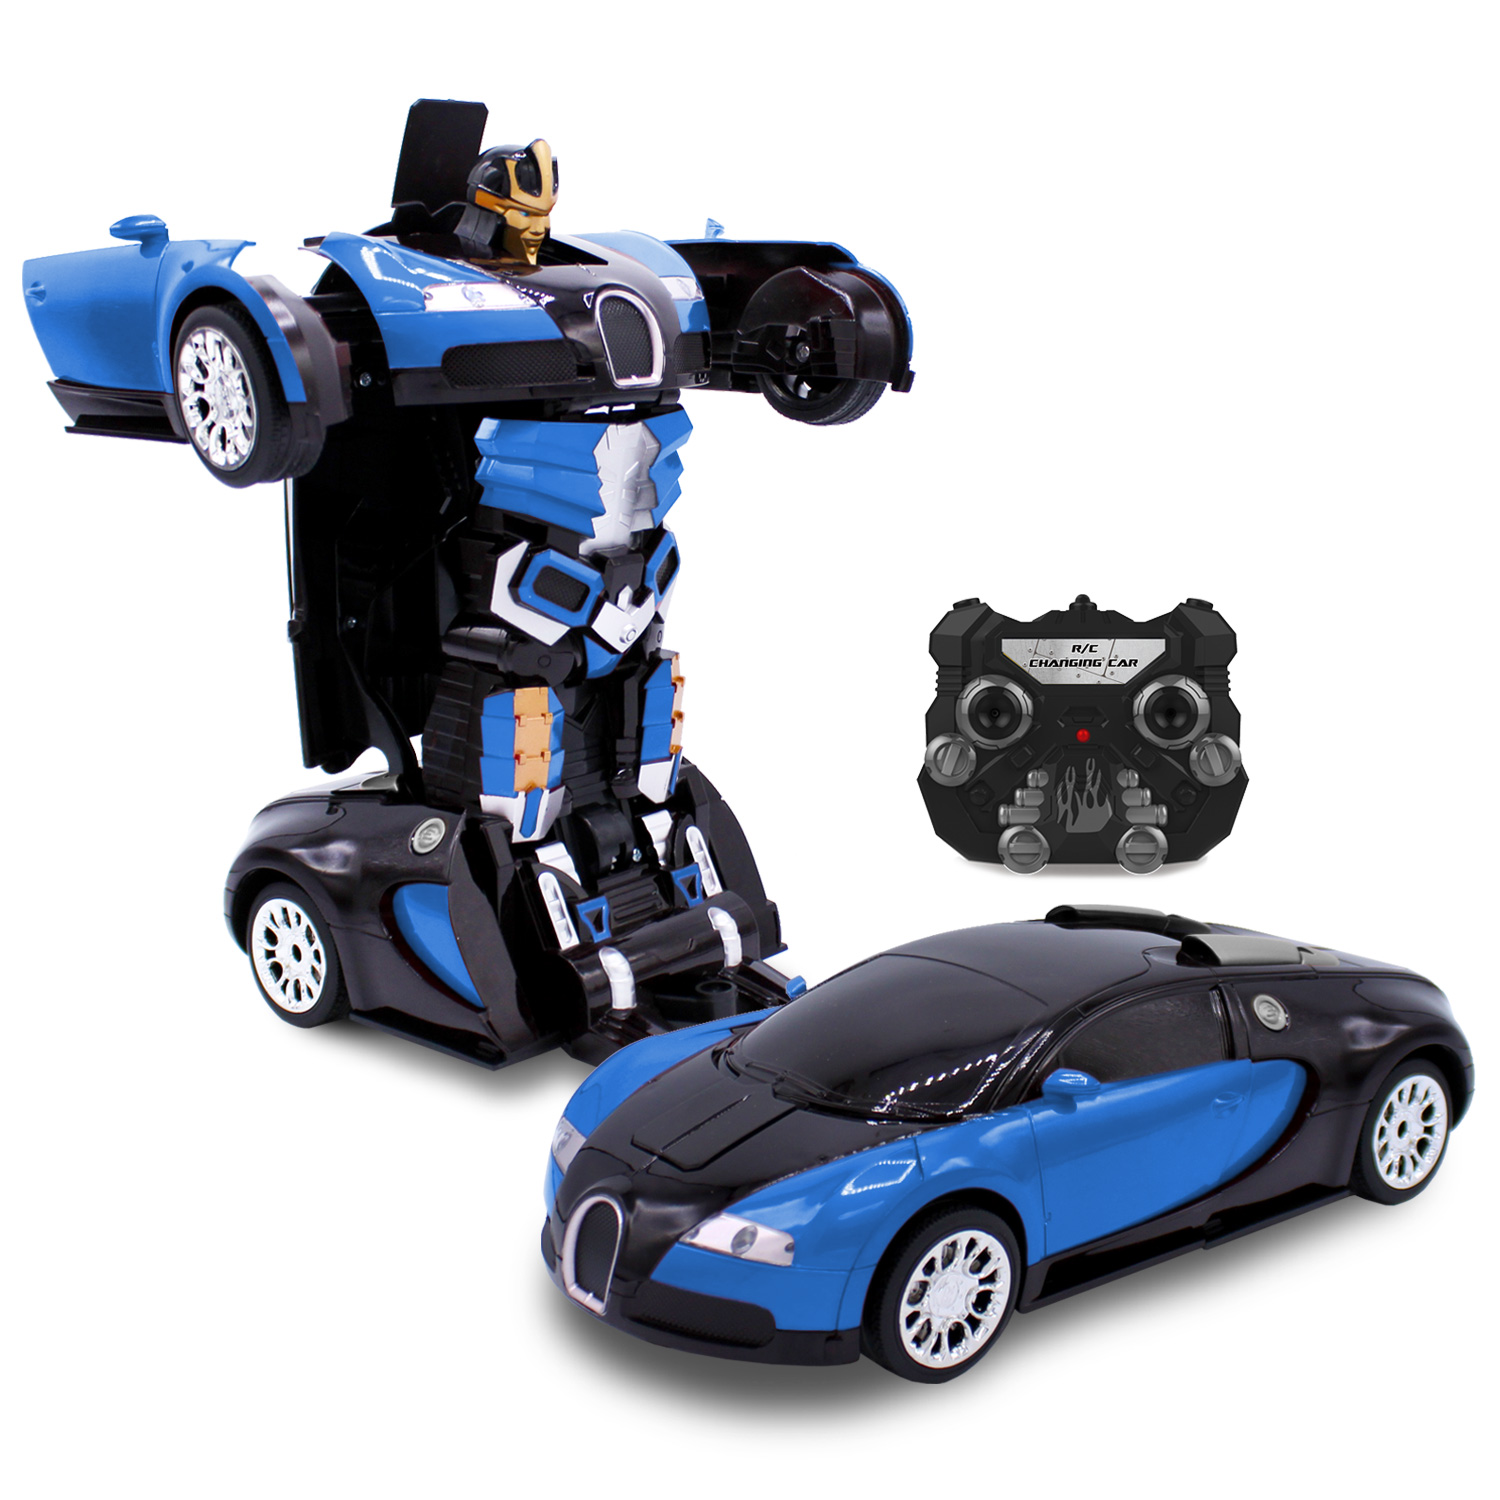 Kids RC Toy Car Transforming Robot Ice Avenger One Button Transformation Engine Sound Dance Mode 360 Spinning Speed Drifting 2 Band 2.4 GHz Remote Control RC Vehicle Toys for Children